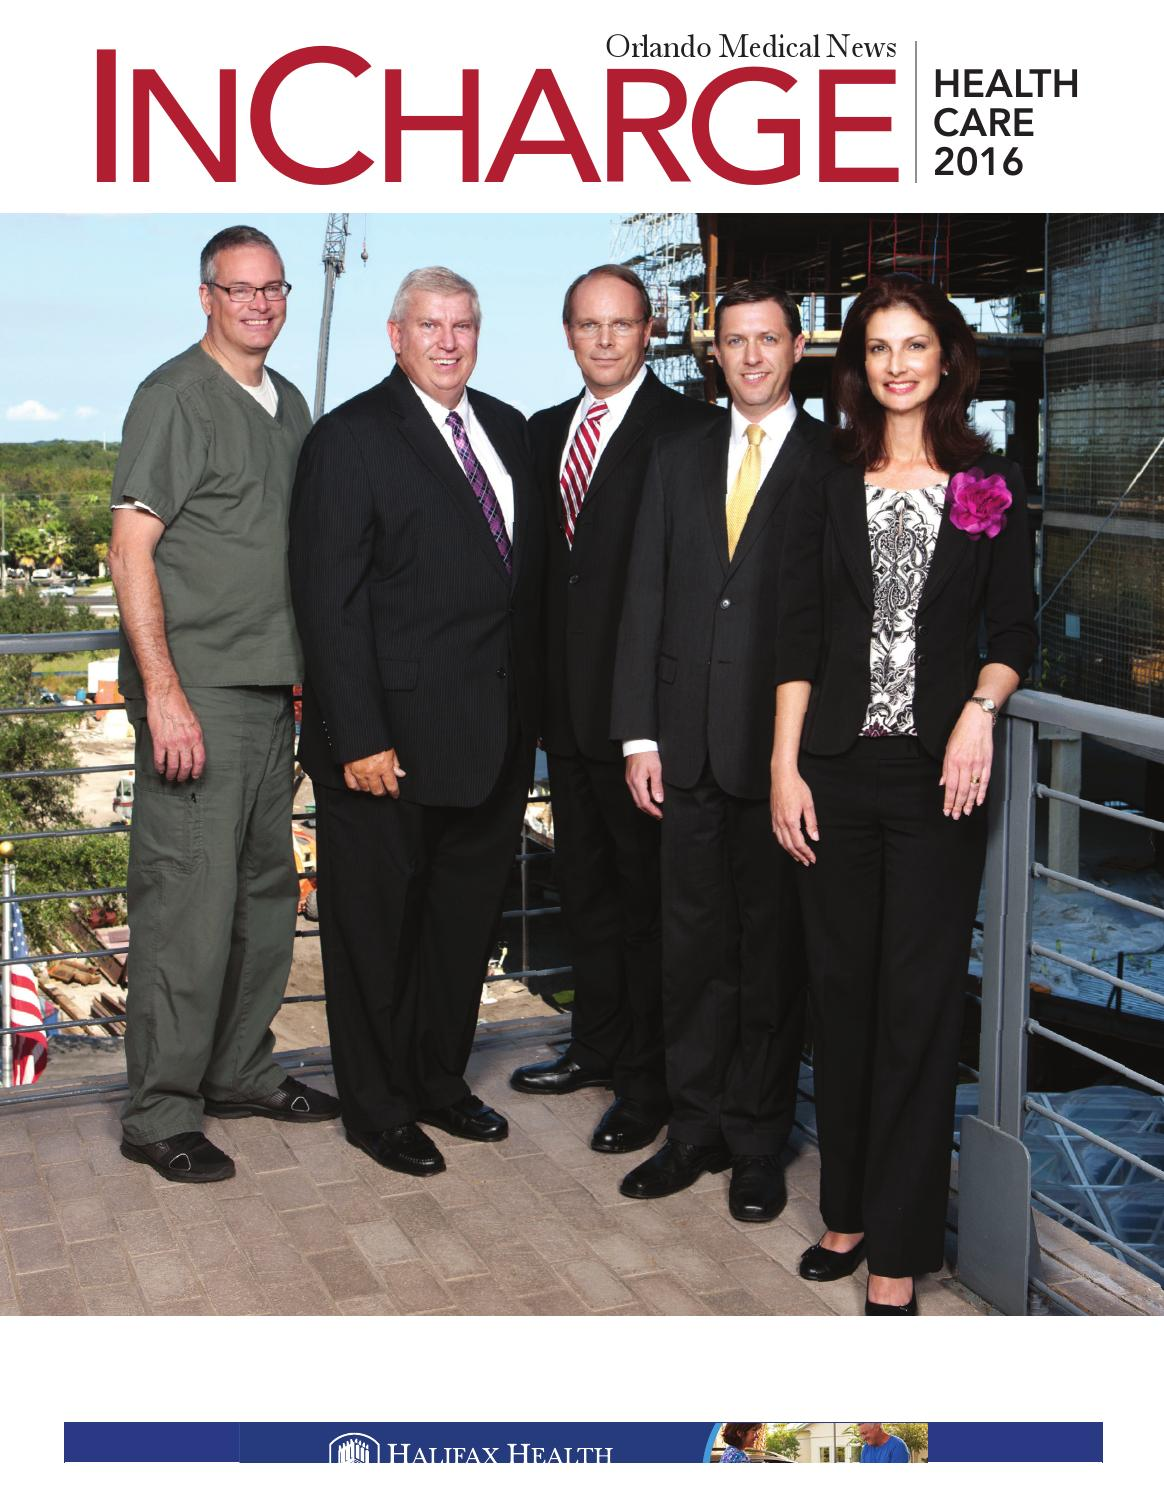 orlando medical news incharge healthcare 2016 by southcomm inc